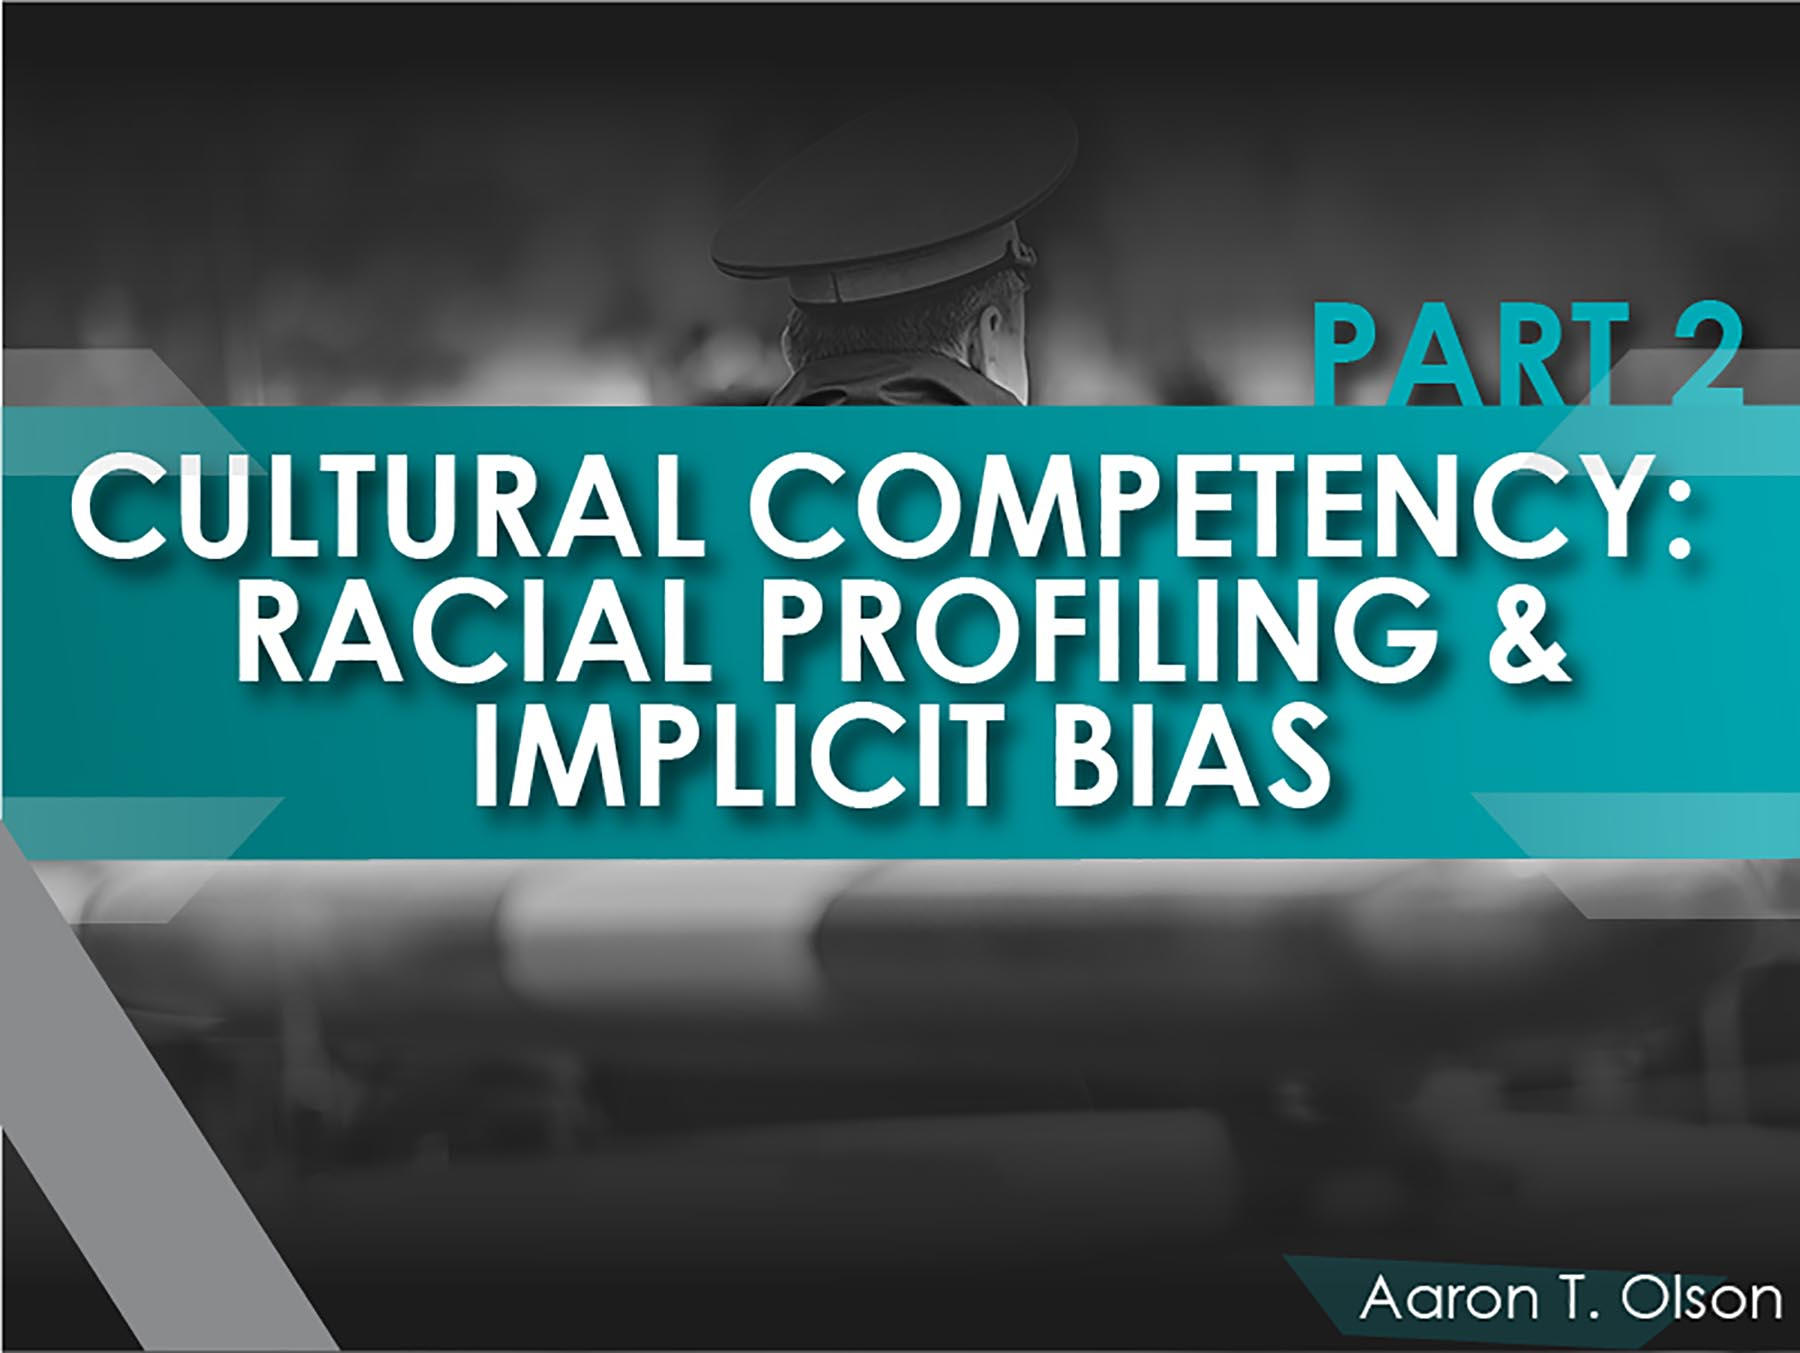 Cultural Competency: Racial Profiling & Implicit Bias Part 2